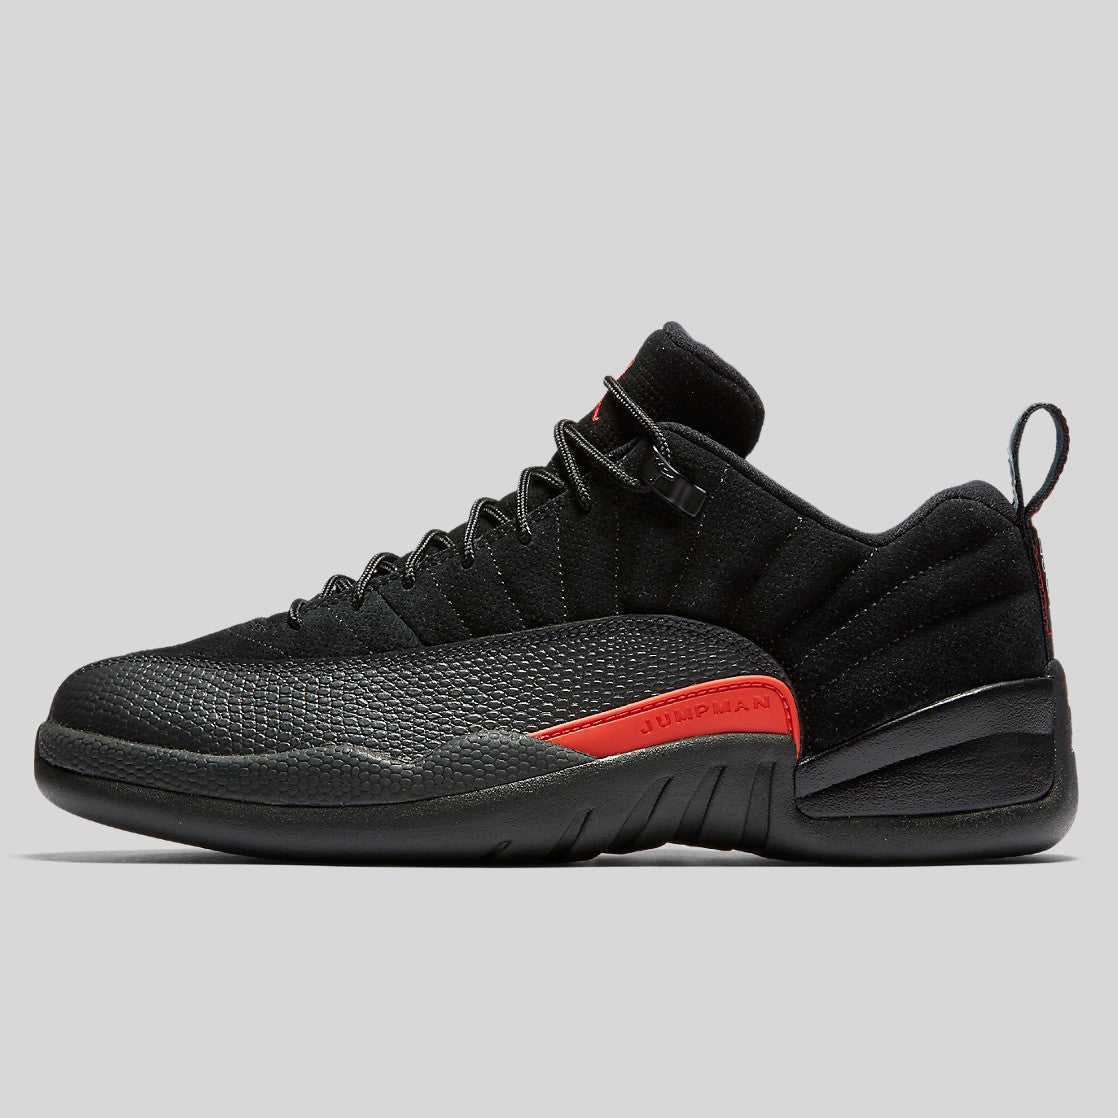 e543f7055fa034 Nike Air Jordan 12 Retro Low Black Max Orange Anthracite (308317-003) ...